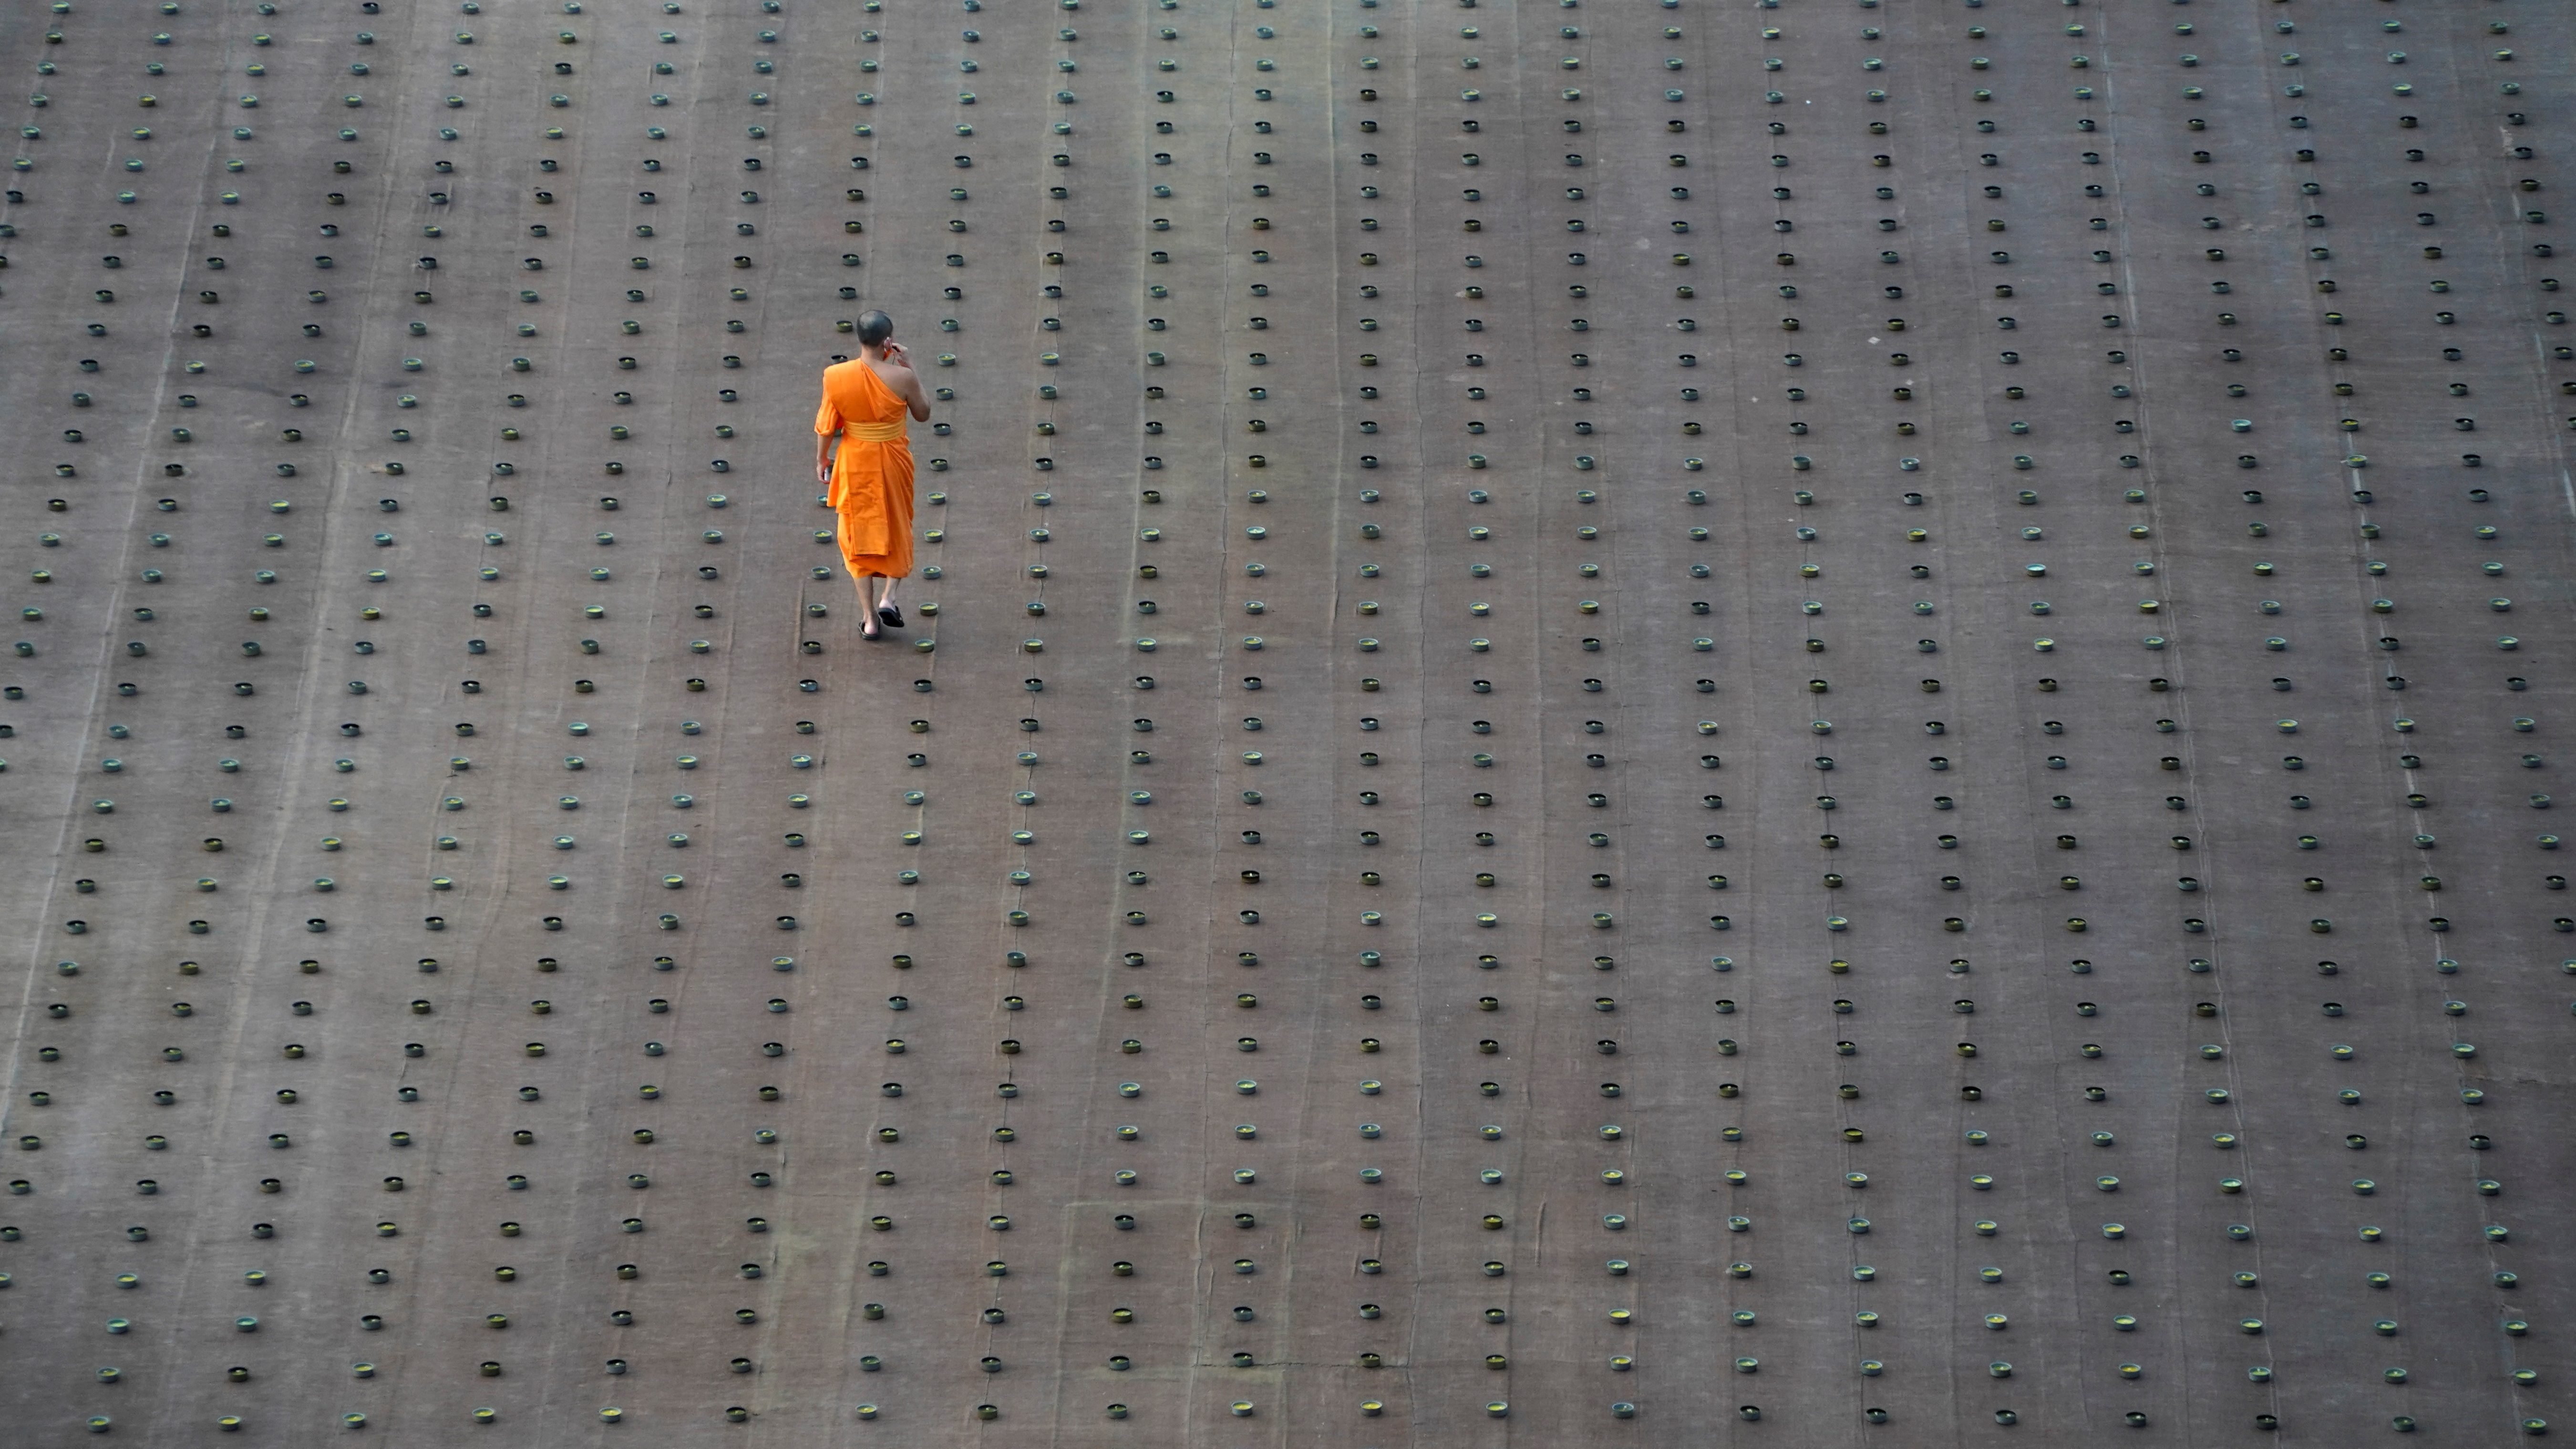 A Buddhist monk walks among candles prepared to be lit as 330,000 of them are arranged in the shape of the earth to set a Guinness World Record during Earth Day, at the Dhammakaya temple in Pathum Thani provine